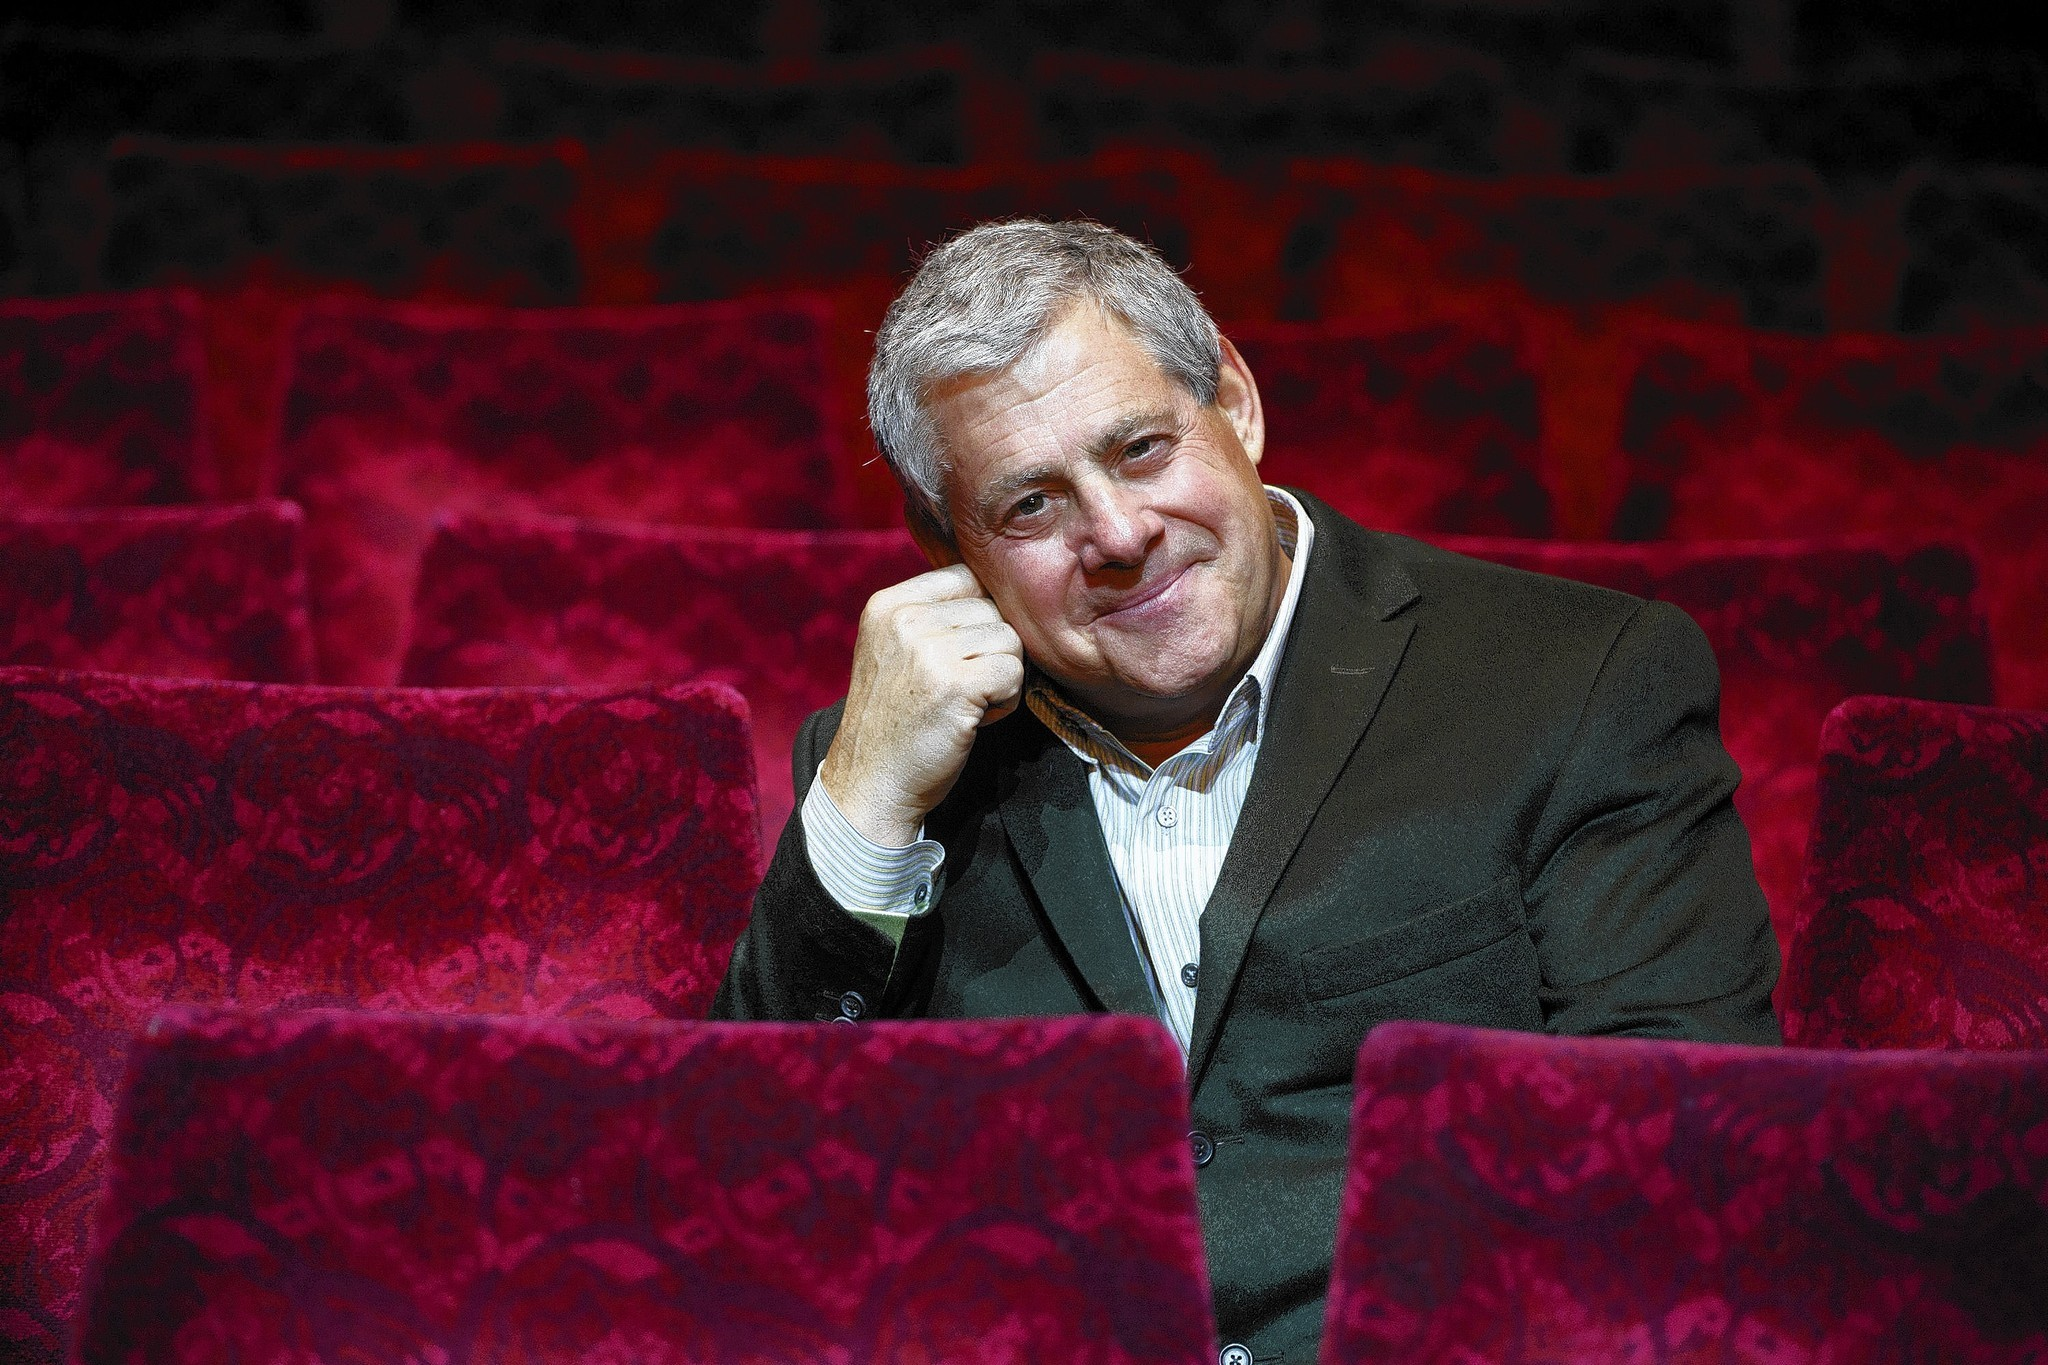 cameron mackintosh - photo #2